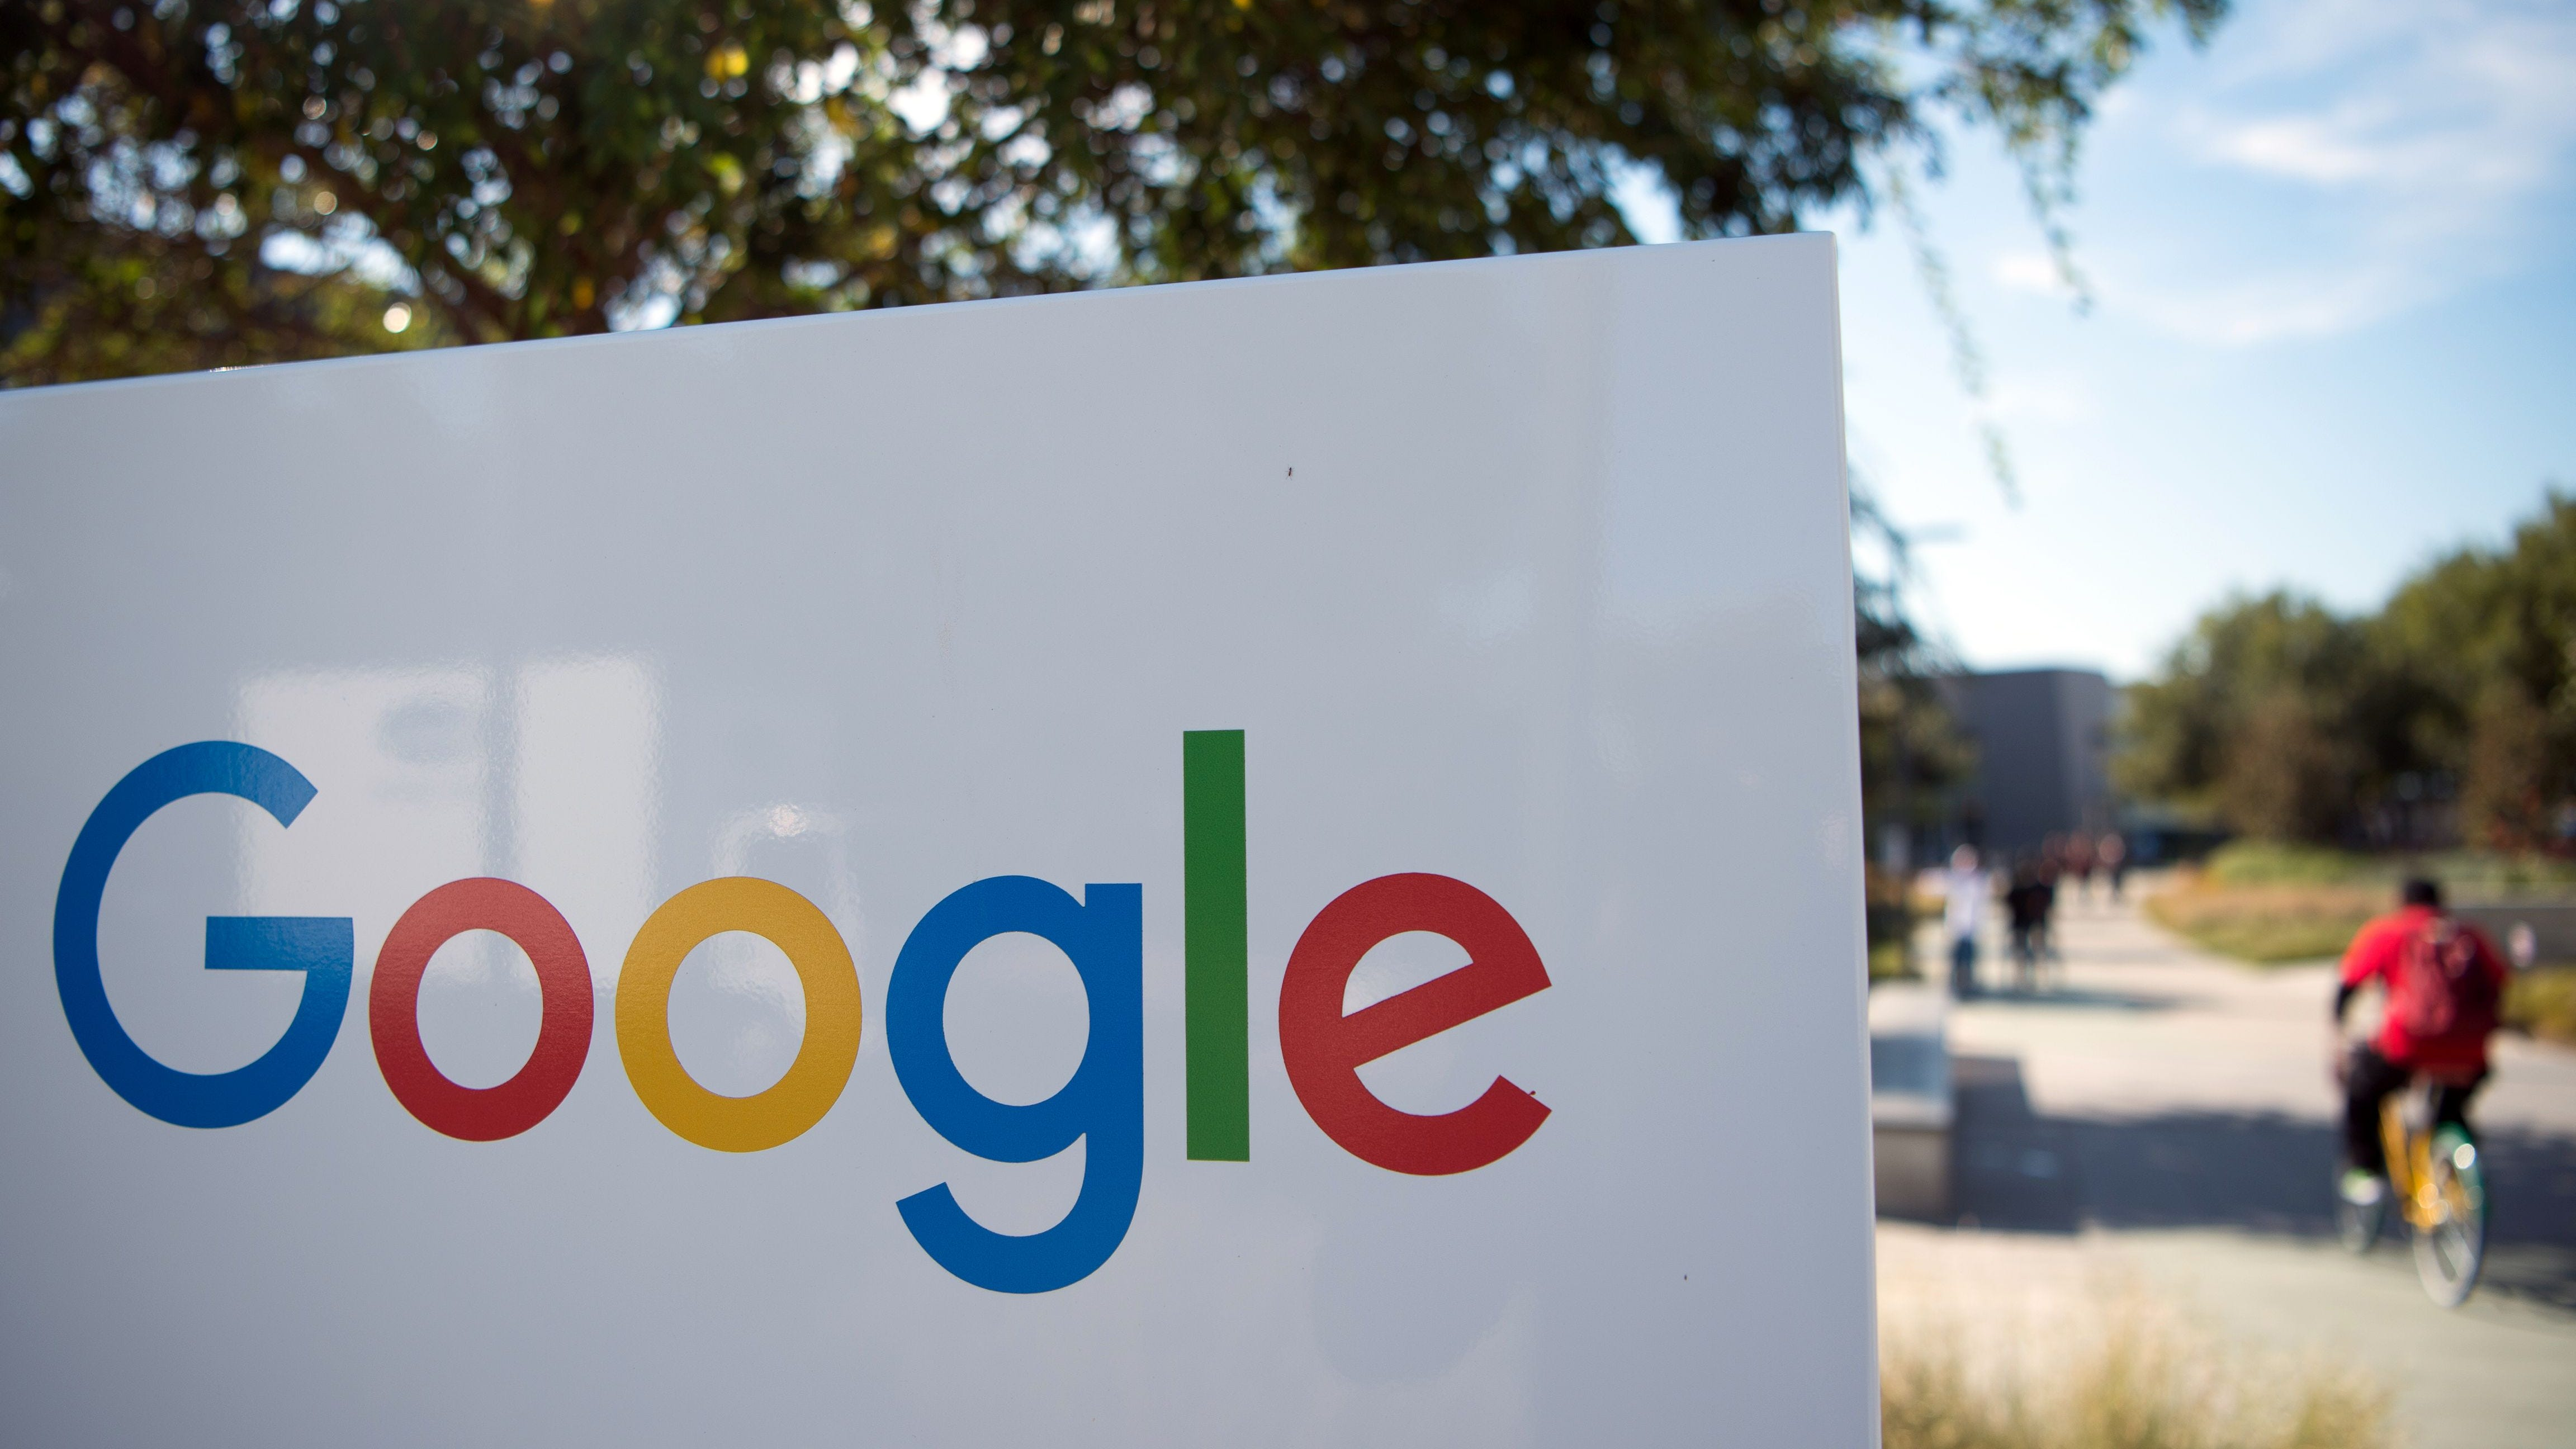 This file photo taken on November 4, 2016 shows a man riding a bike past a Google sign and logo at the Googleplex in Menlo Park, California.